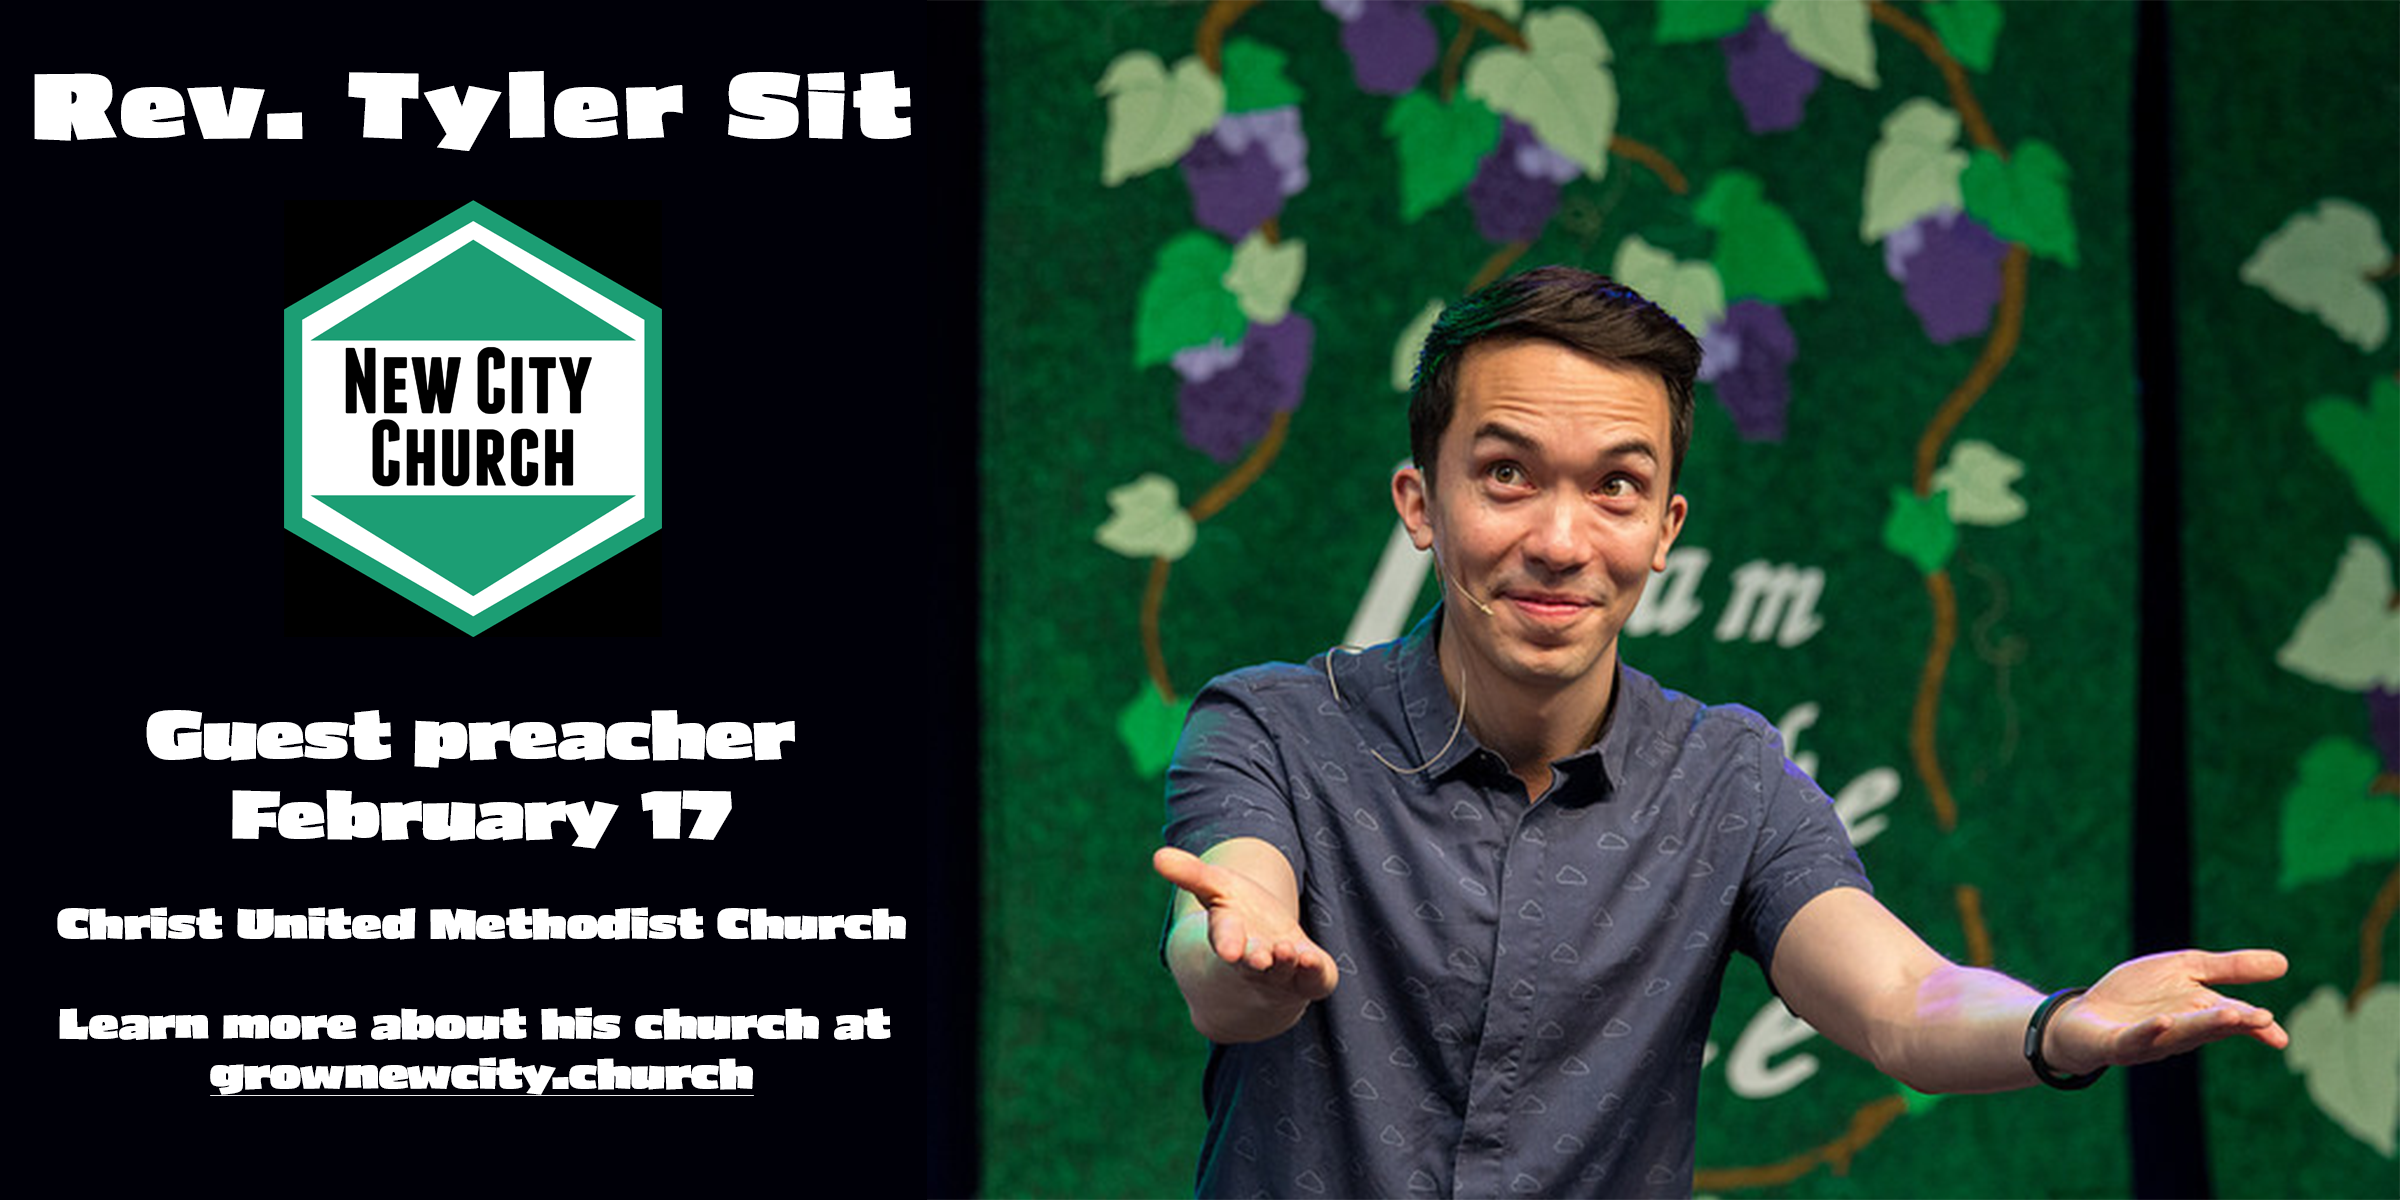 Rev. Tyler Sit of New City Church in Minneapolis, MN will be joining us as Guest Preacher on February 17 for the 9 & 11 o clock services! To learn more about Rev. Tyler's church go online to grownewcity.church and see all the amazing ways they are blessing their community!